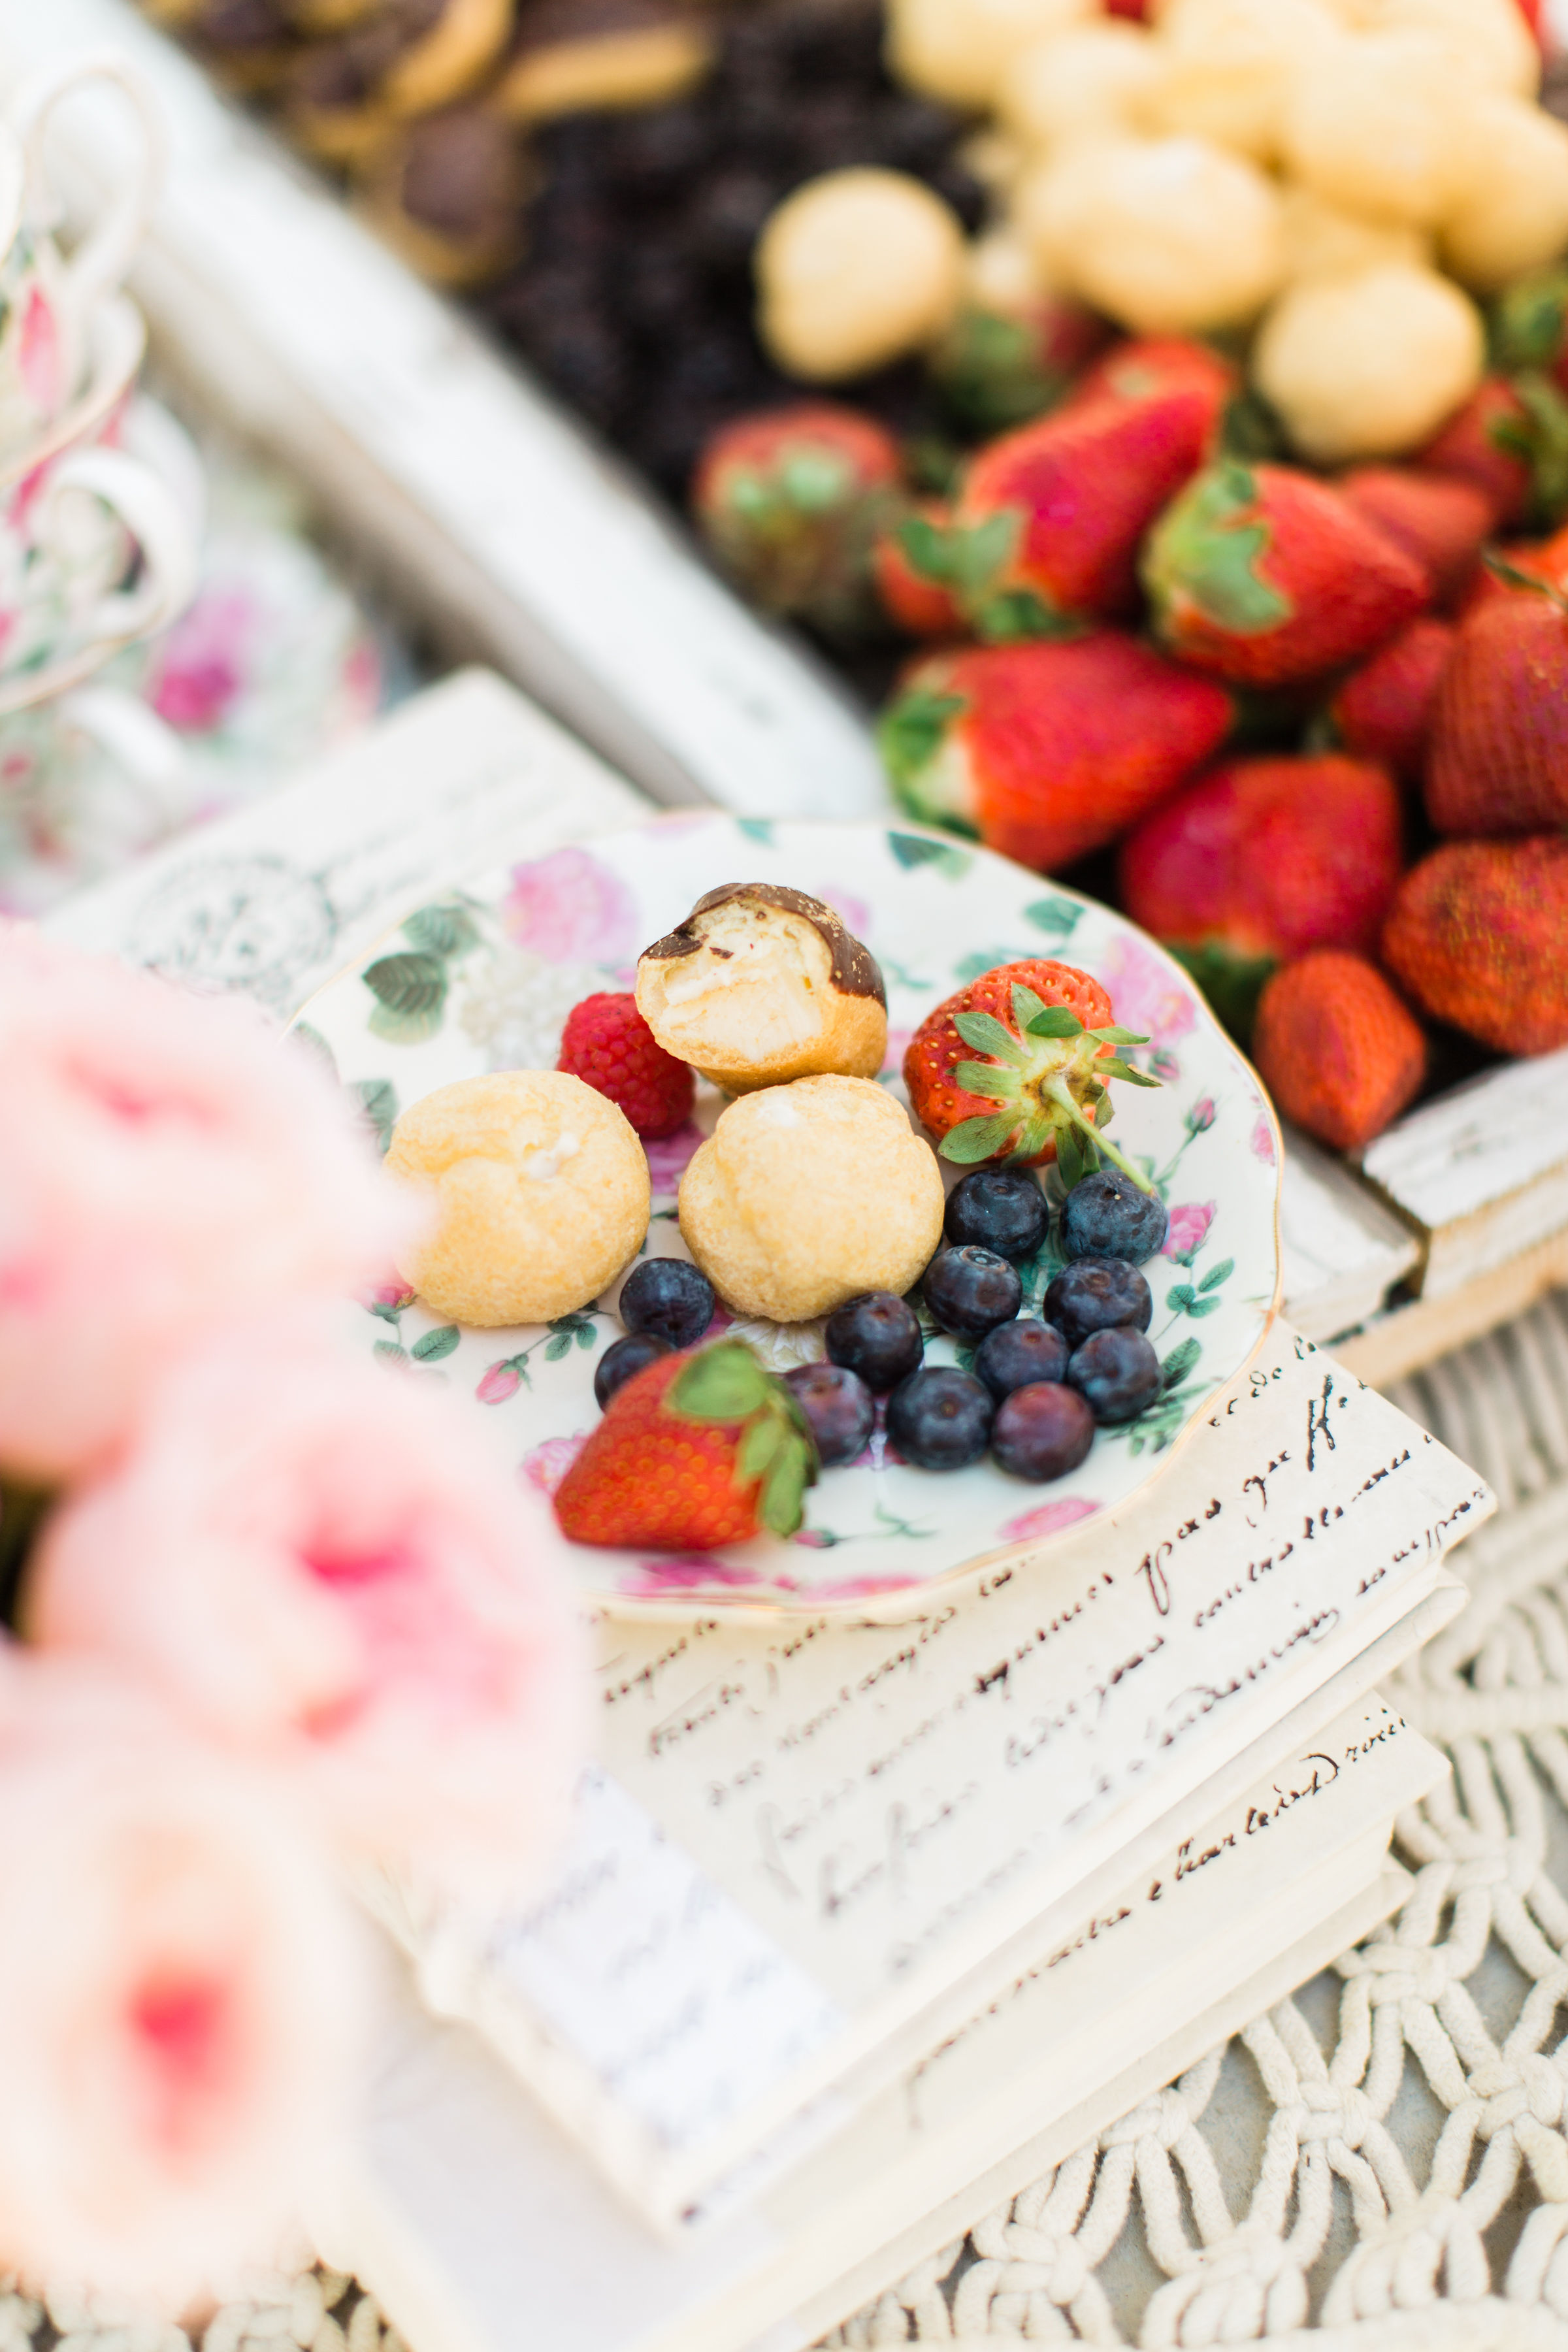 Welcome the sunshine with a whimsical outdoor spring tea and dessert party, complete with the easiest foolproof desserts that will make you hostess with the mostest. | Click through for the details. #teaparty #dessertparty #outdoorparty #spring | glitterinc.com | @glitterinc